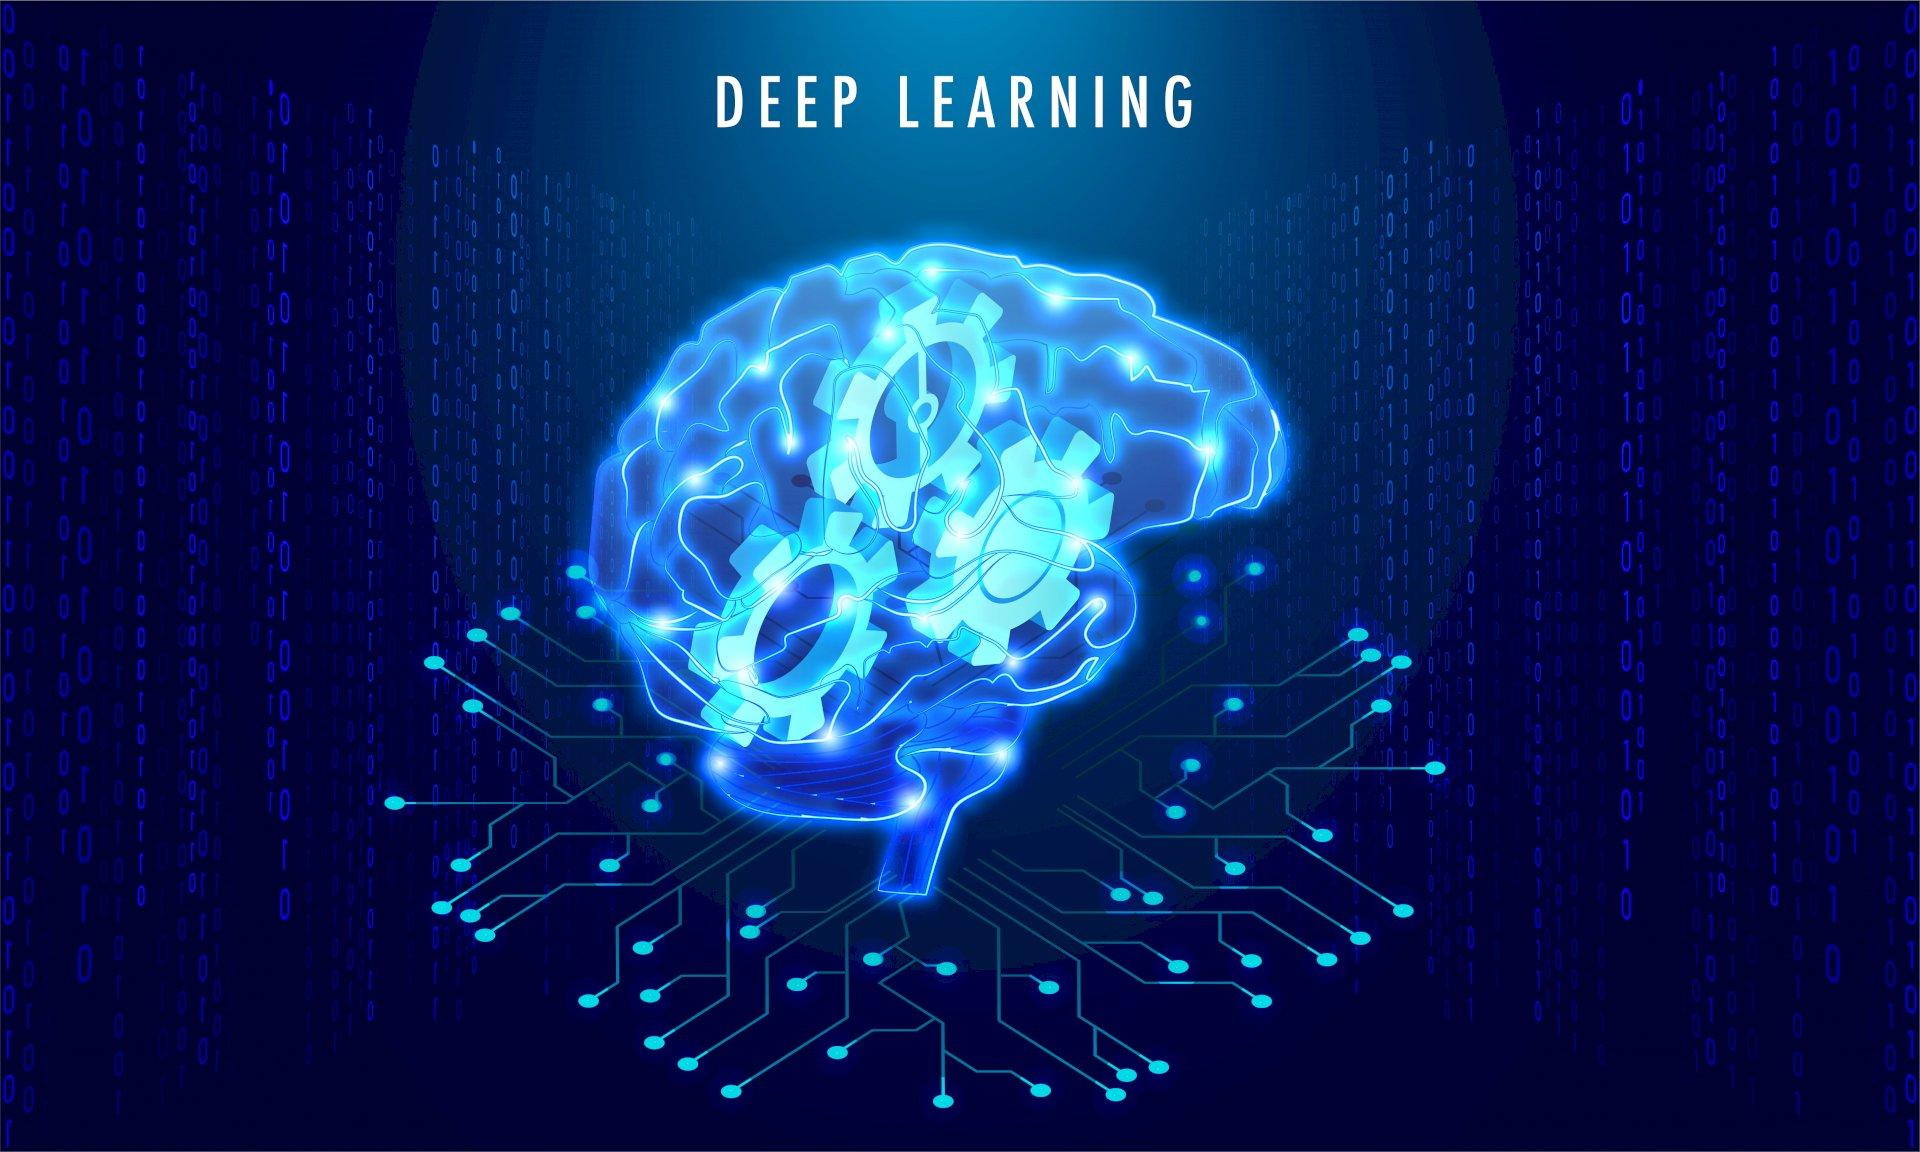 Artificial intelligence en deep learning door Robovision